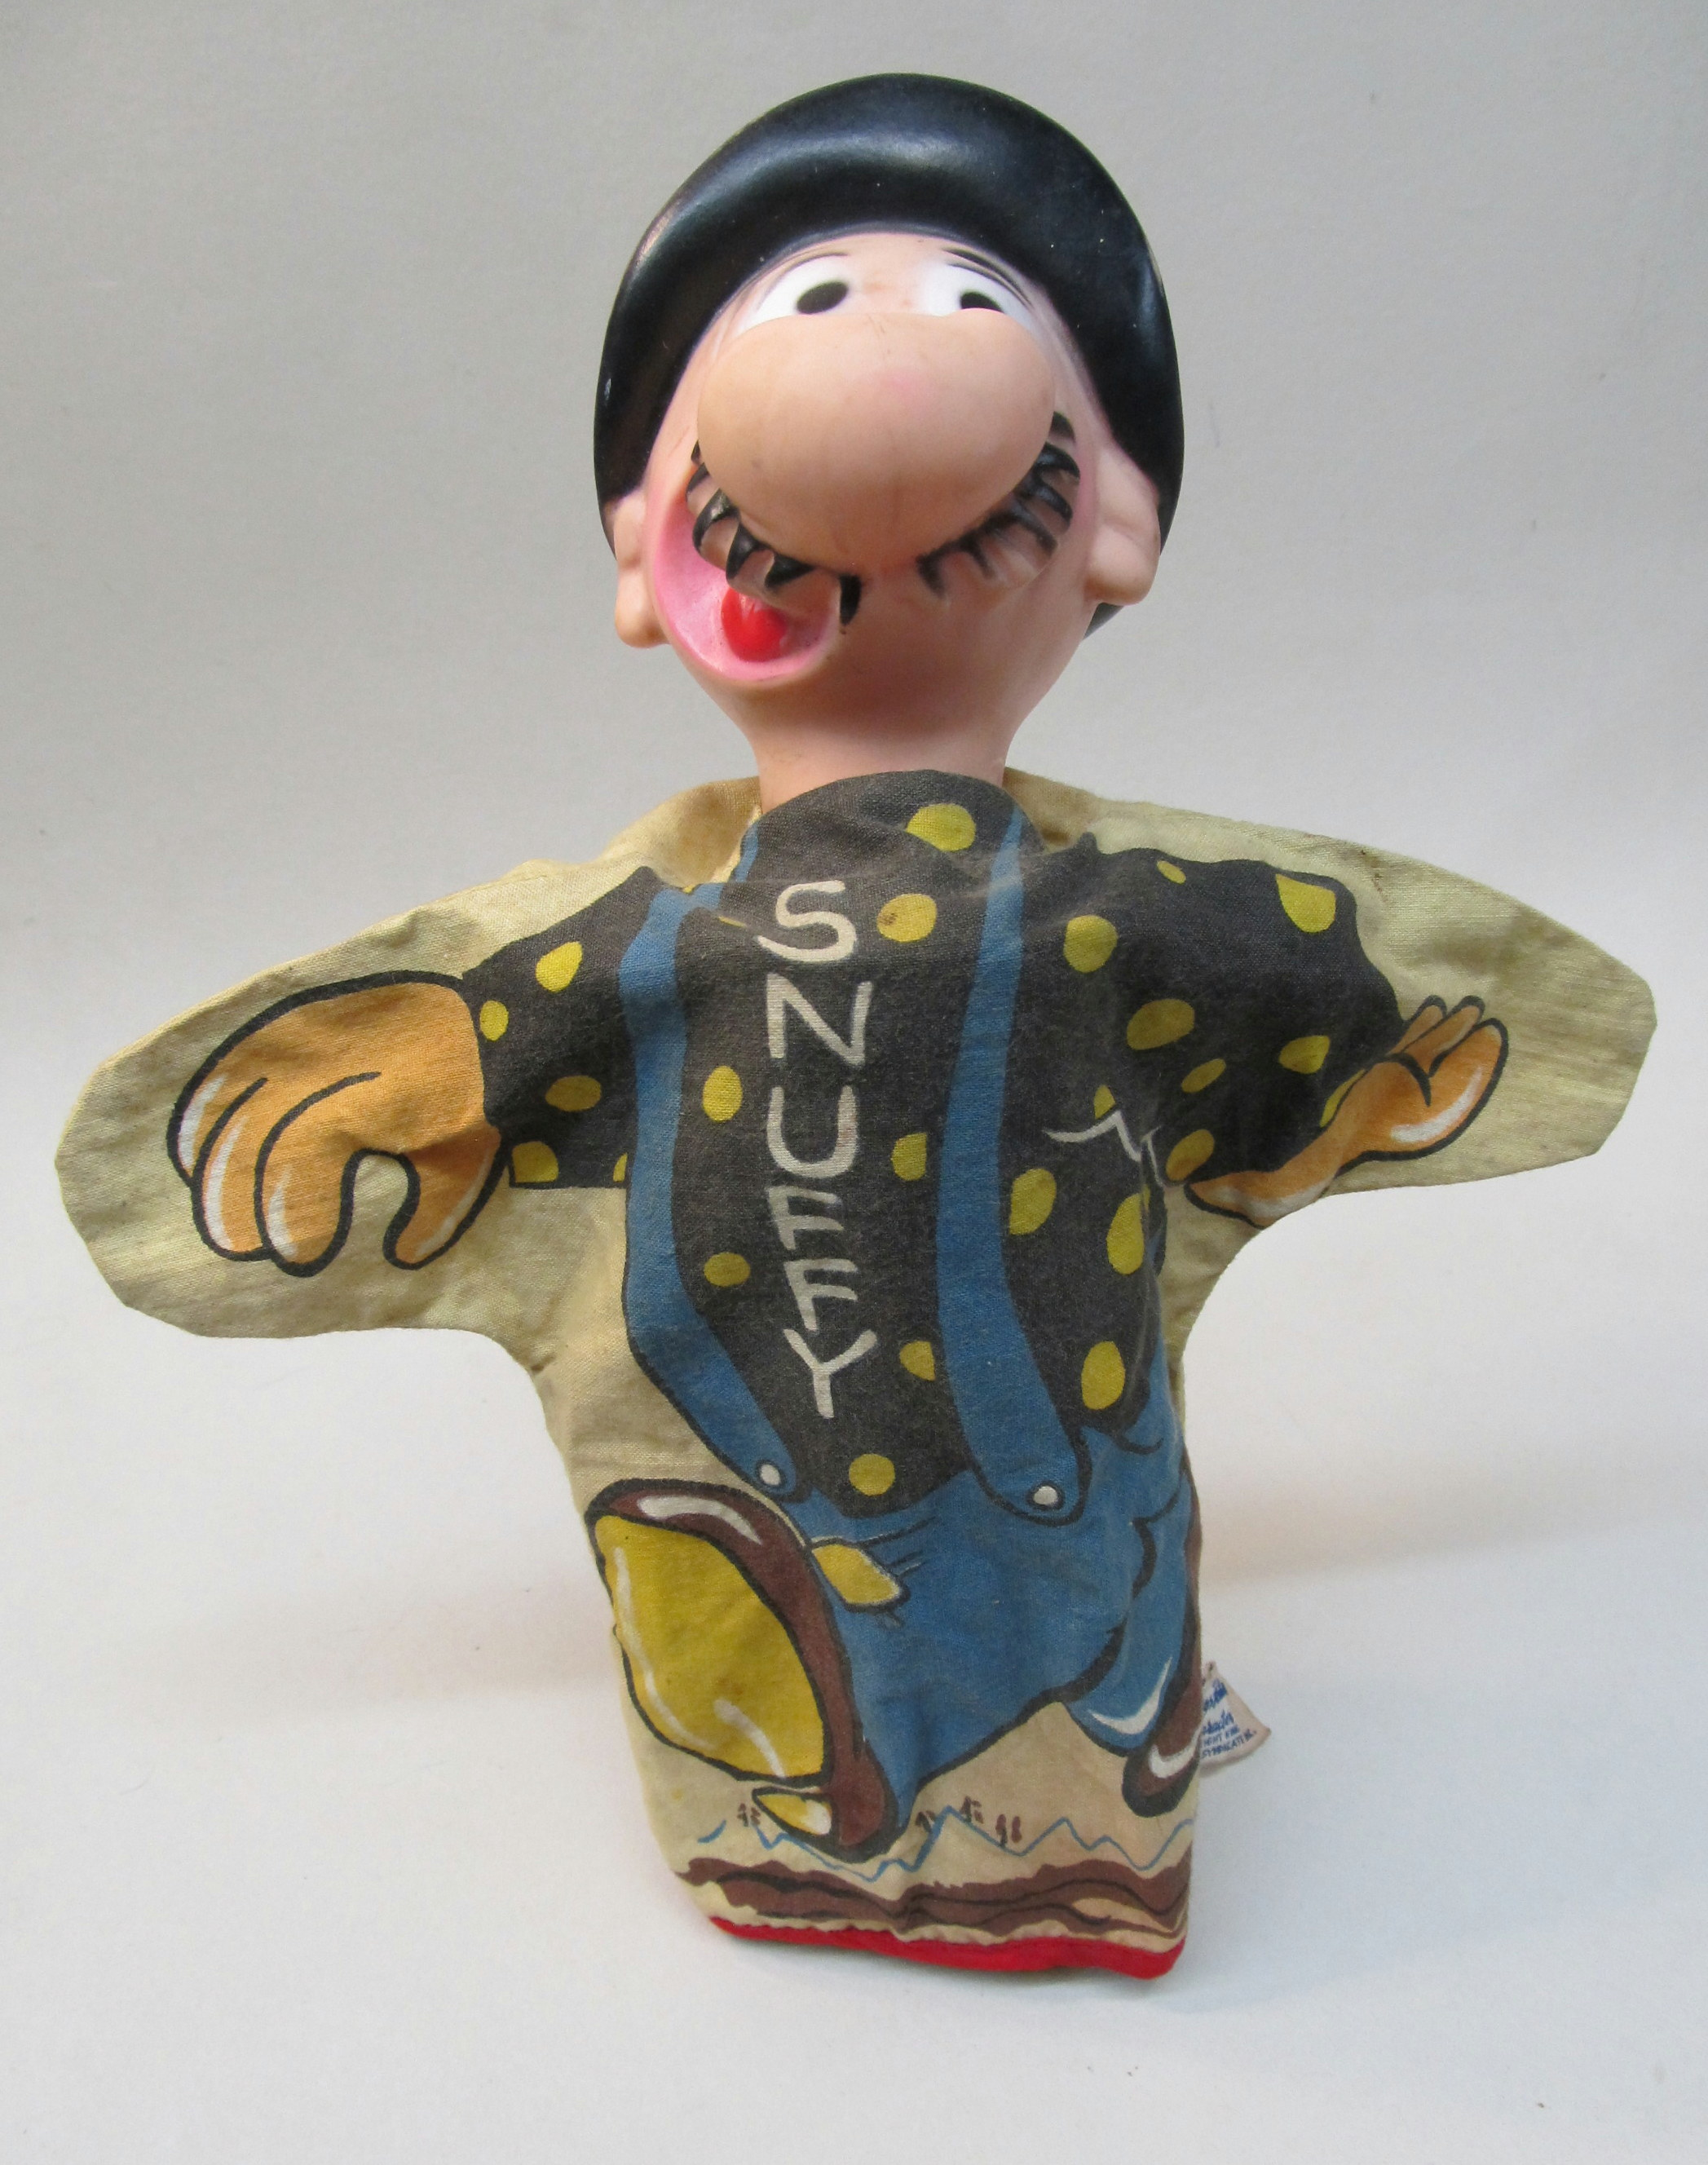 Snuffy Smith hand puppet by Gund, early 1960s.